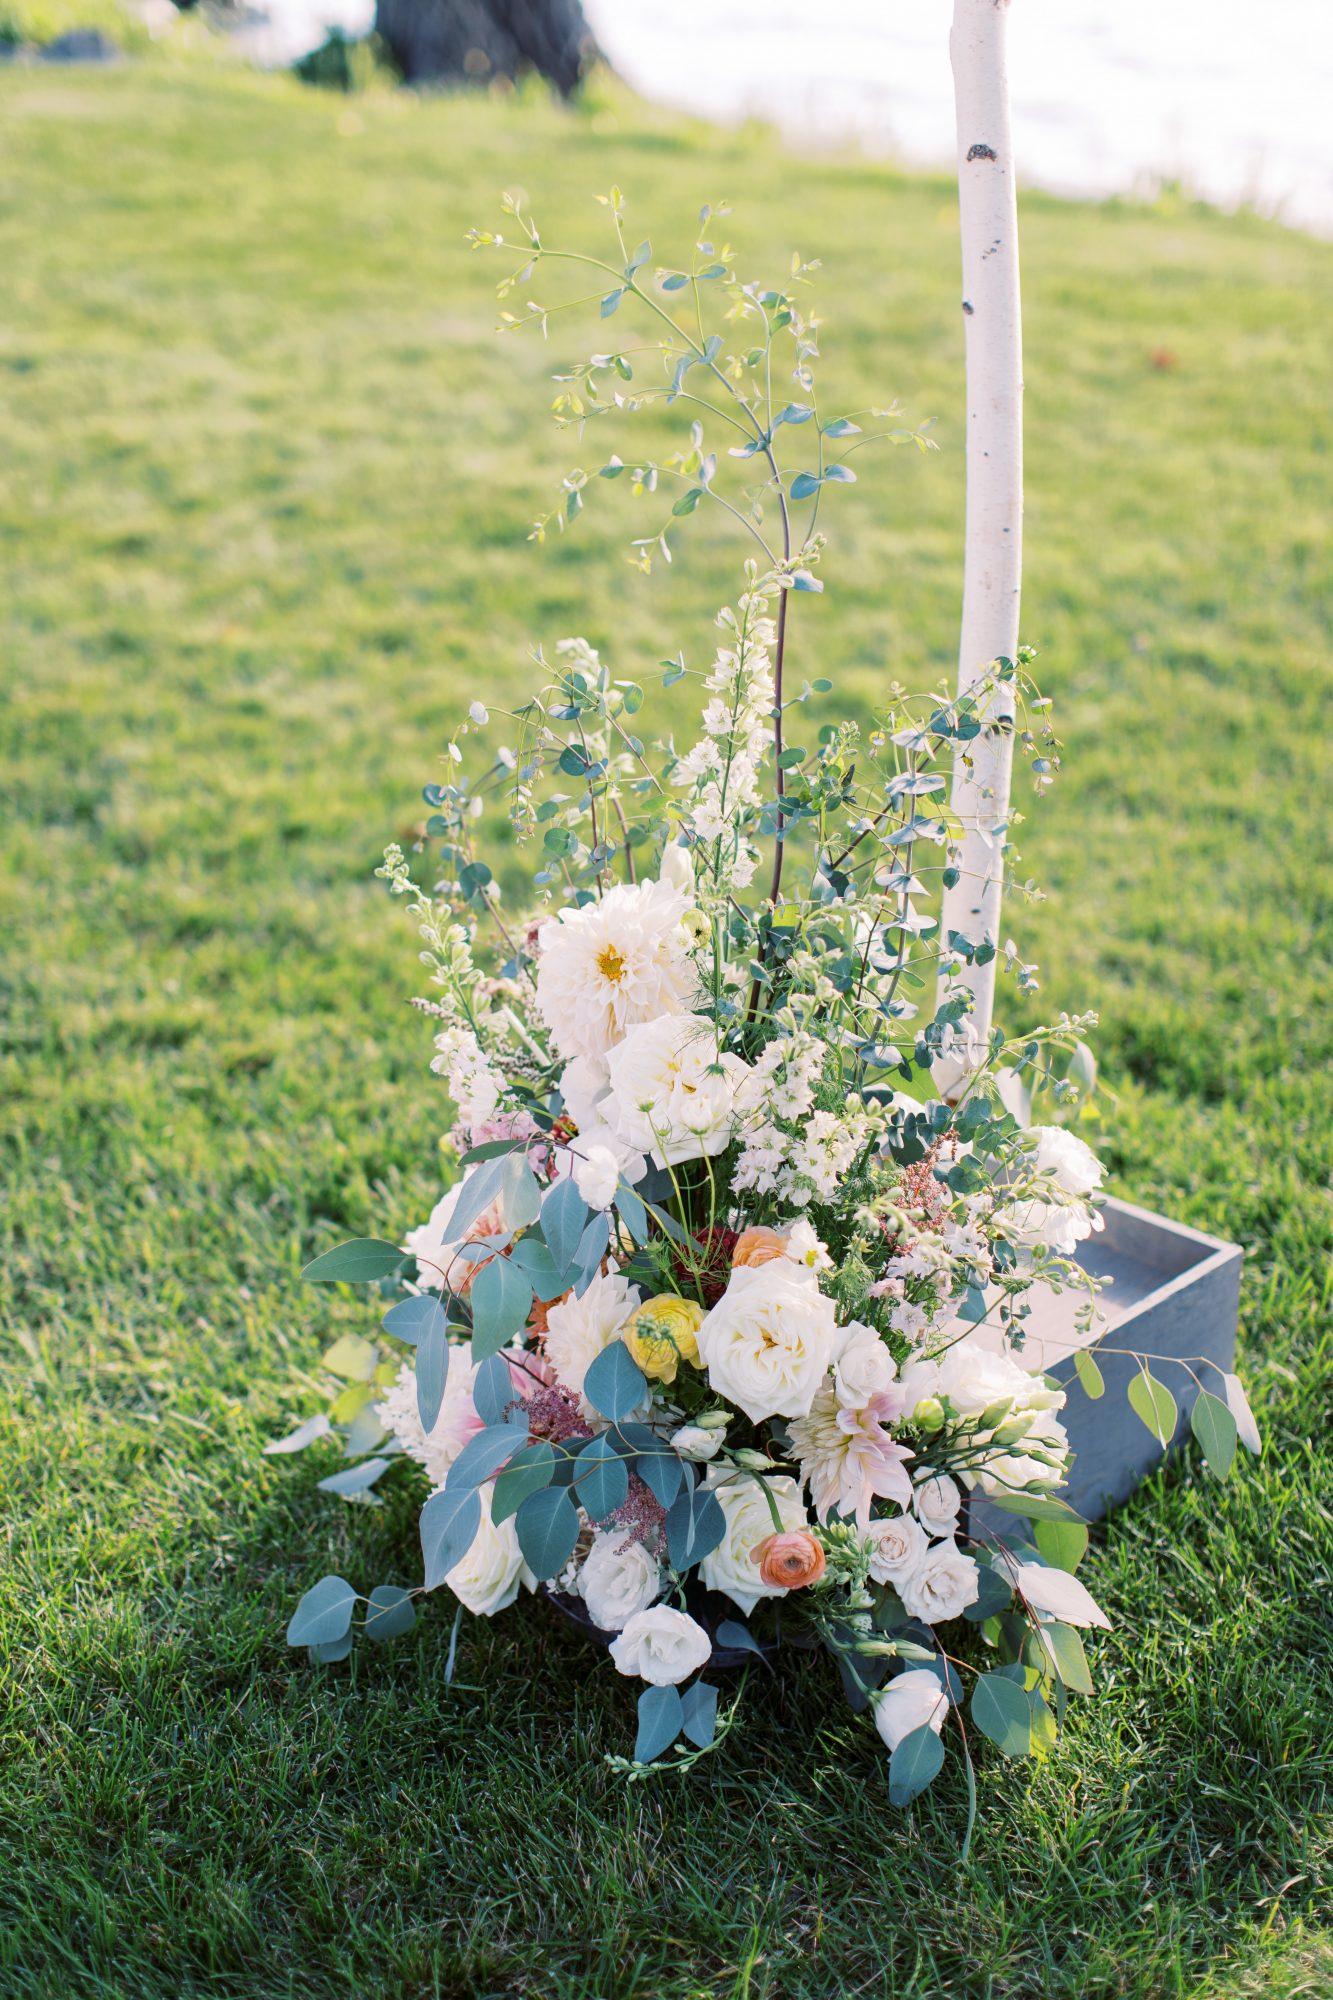 charlene jeremy wedding arch with flowers